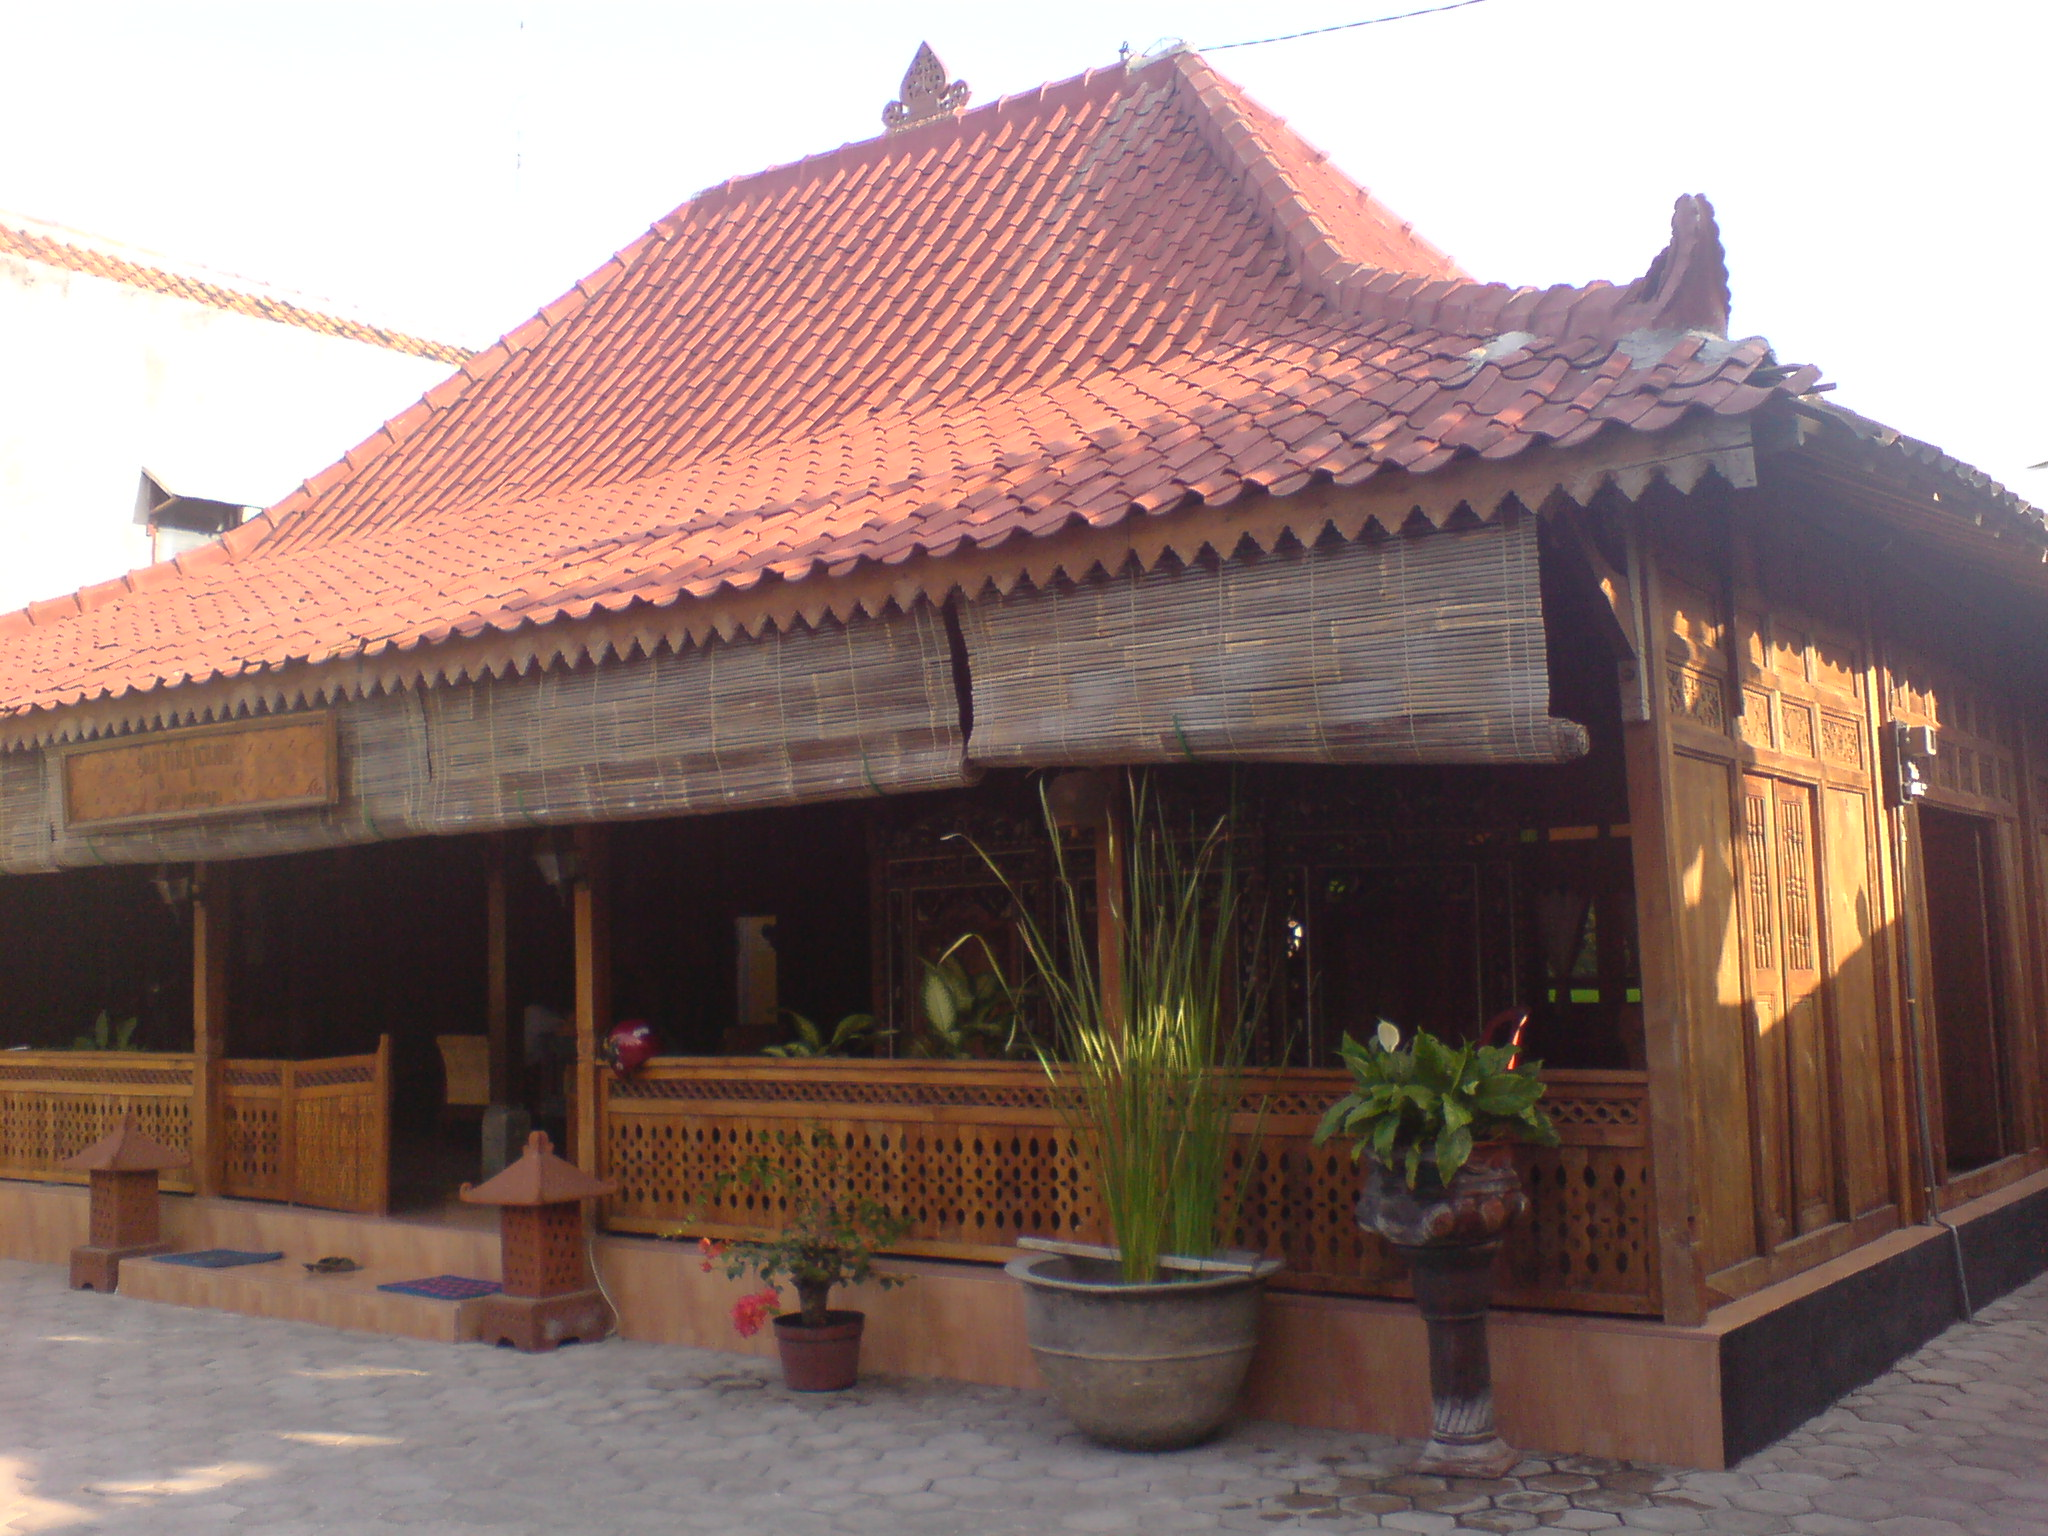 Model Rumah Jawa http://puripurboyo.wordpress.com/